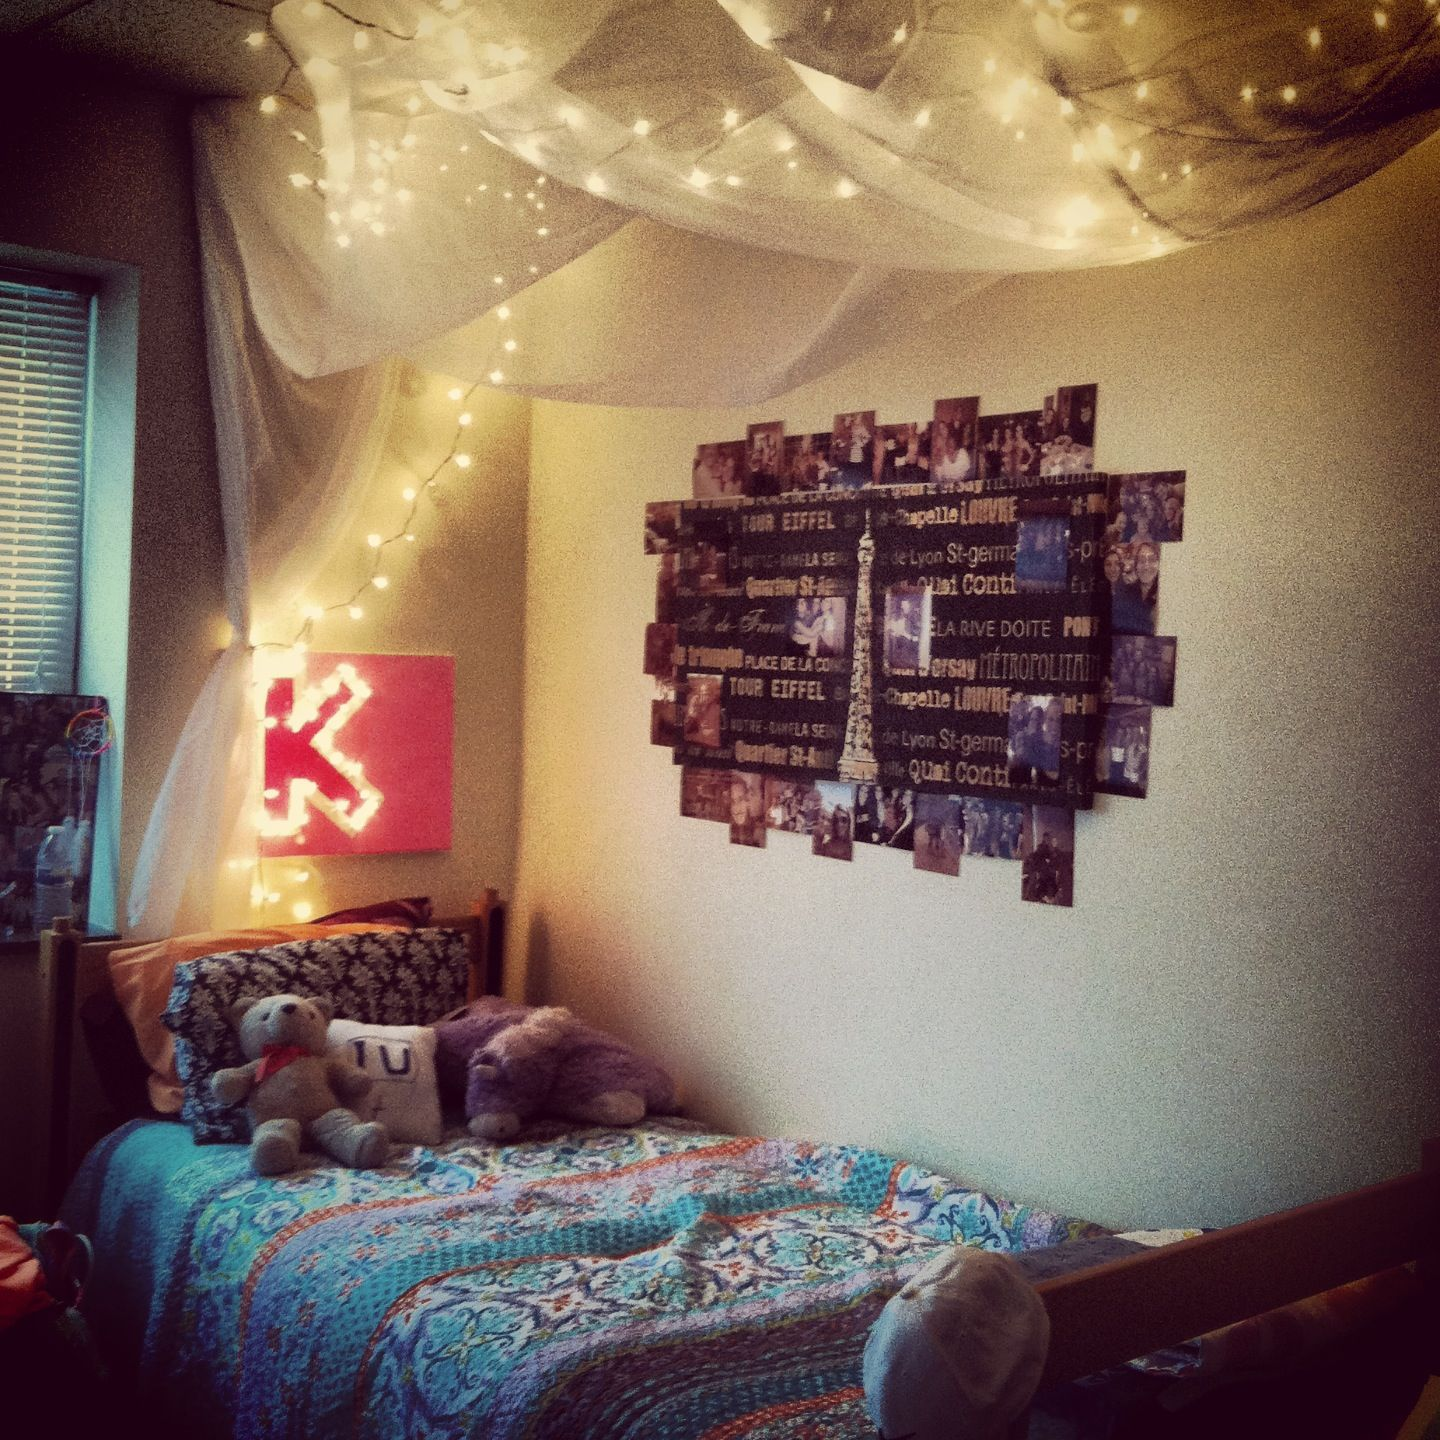 Diy bed canopy dorm - College Dorm Lighting Pins In The Creases Of The Molding Corners